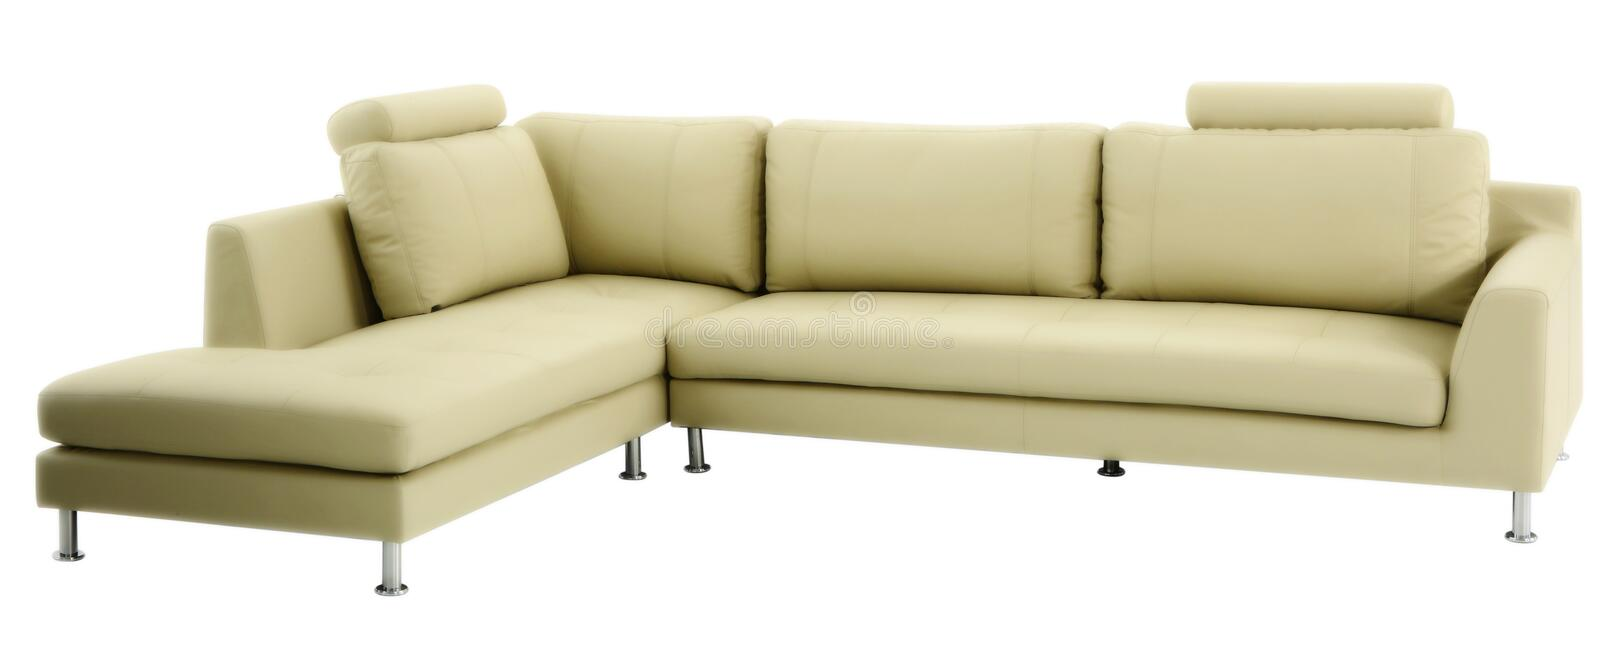 Sofa moderne d'isolement photo stock